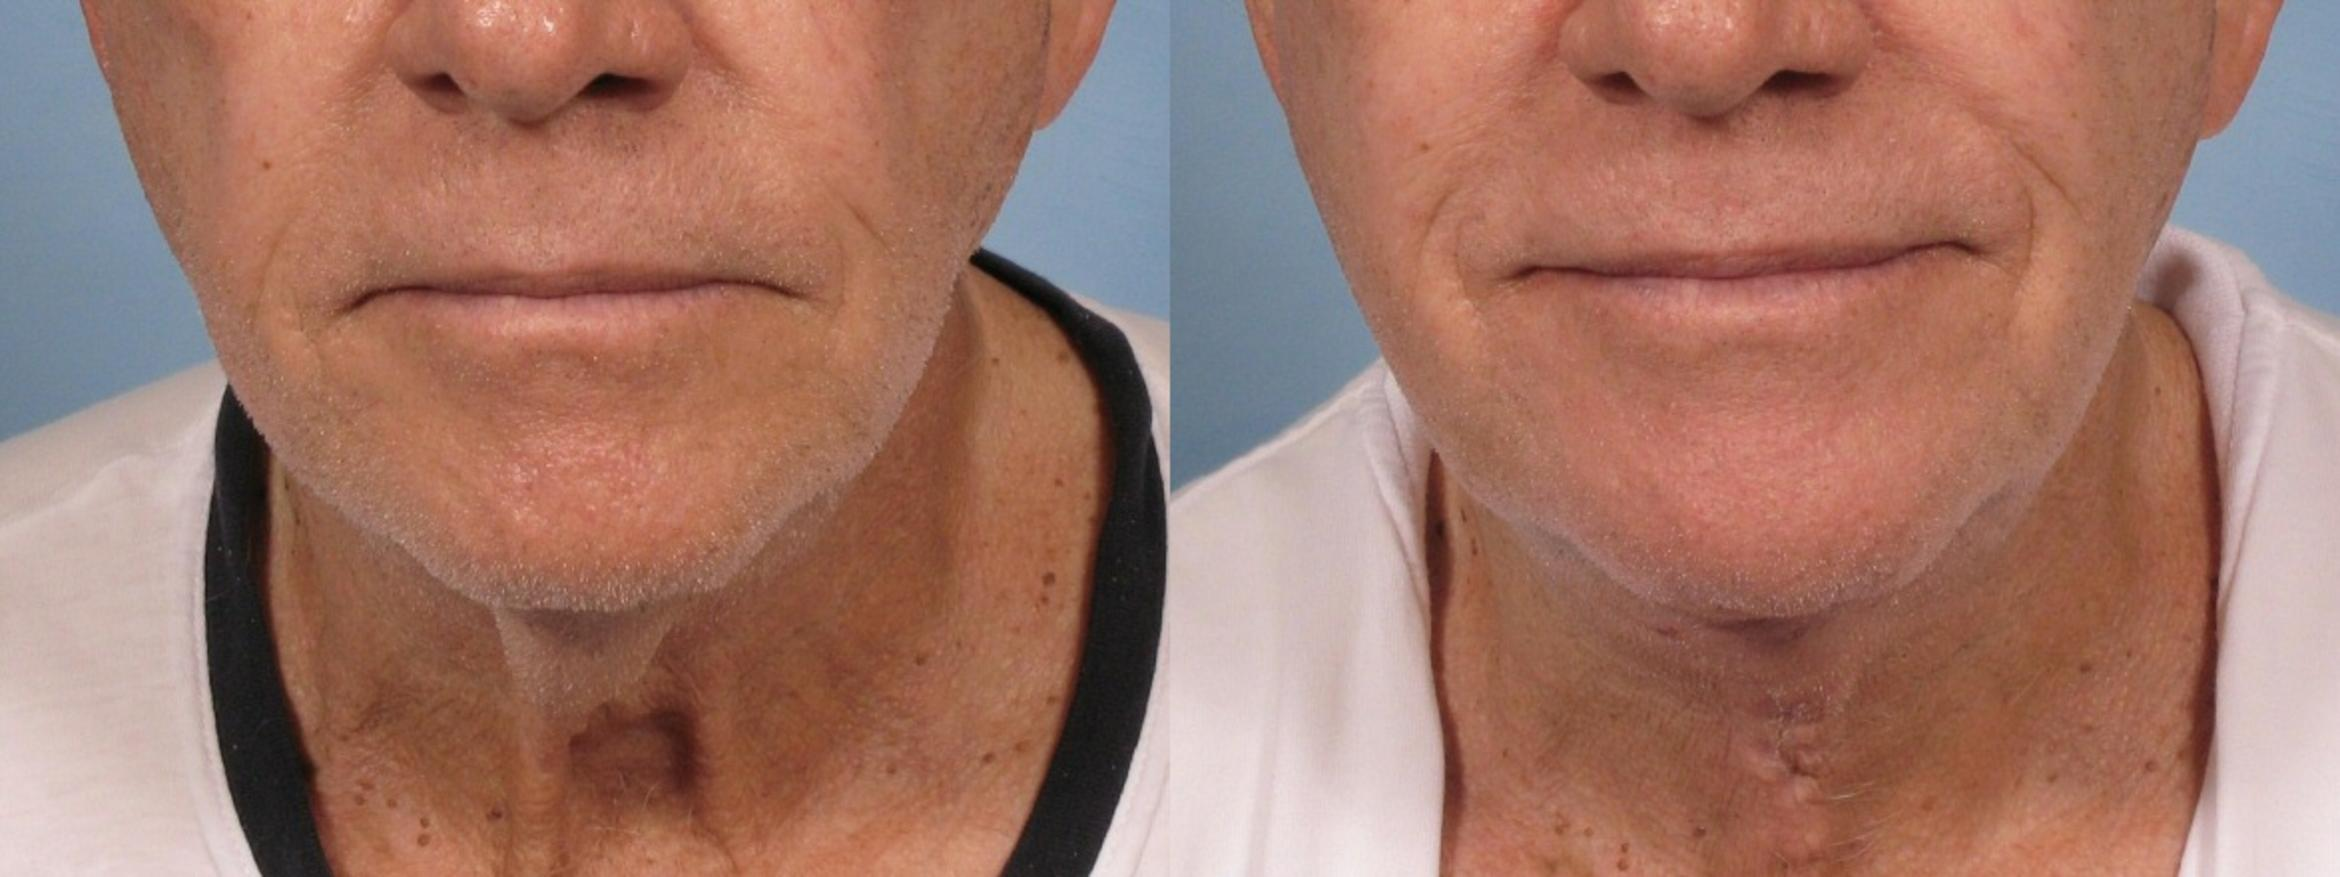 Neck Lift Case 187 Before & After View #1 | Naples, FL | Kent V. Hasen, M.D.